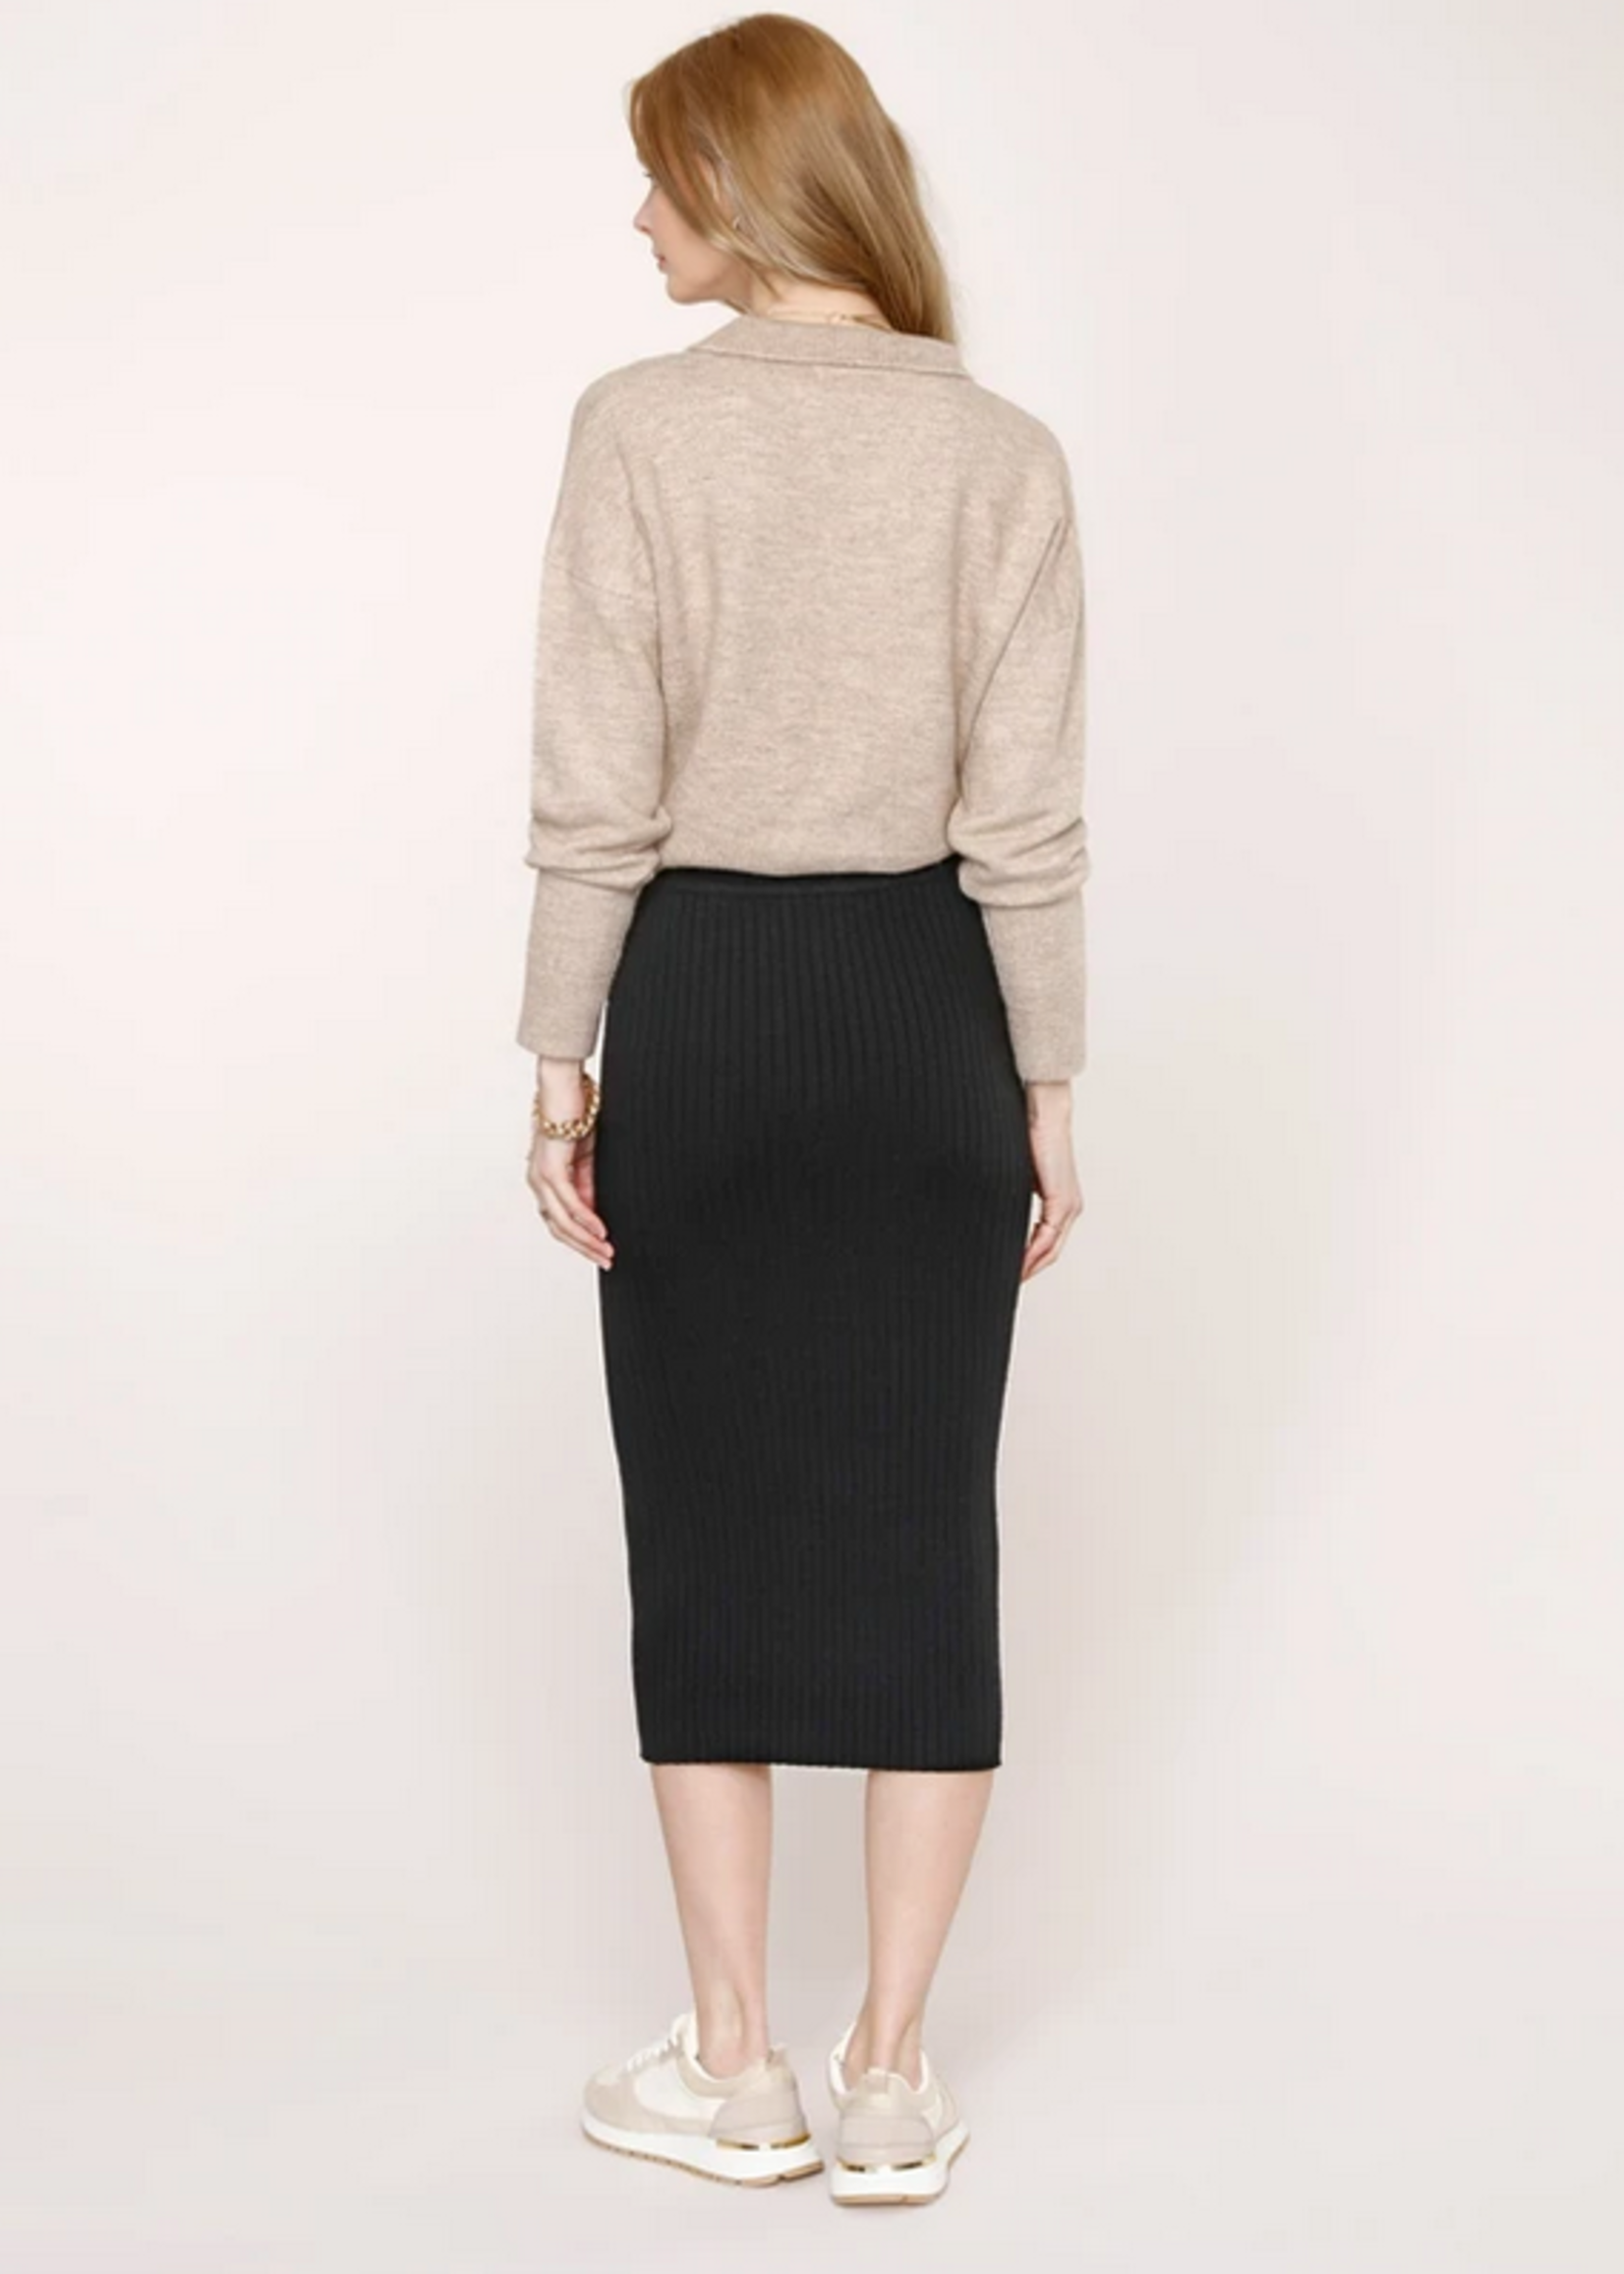 Elitaire Boutique Eve Knit Skirt in Black